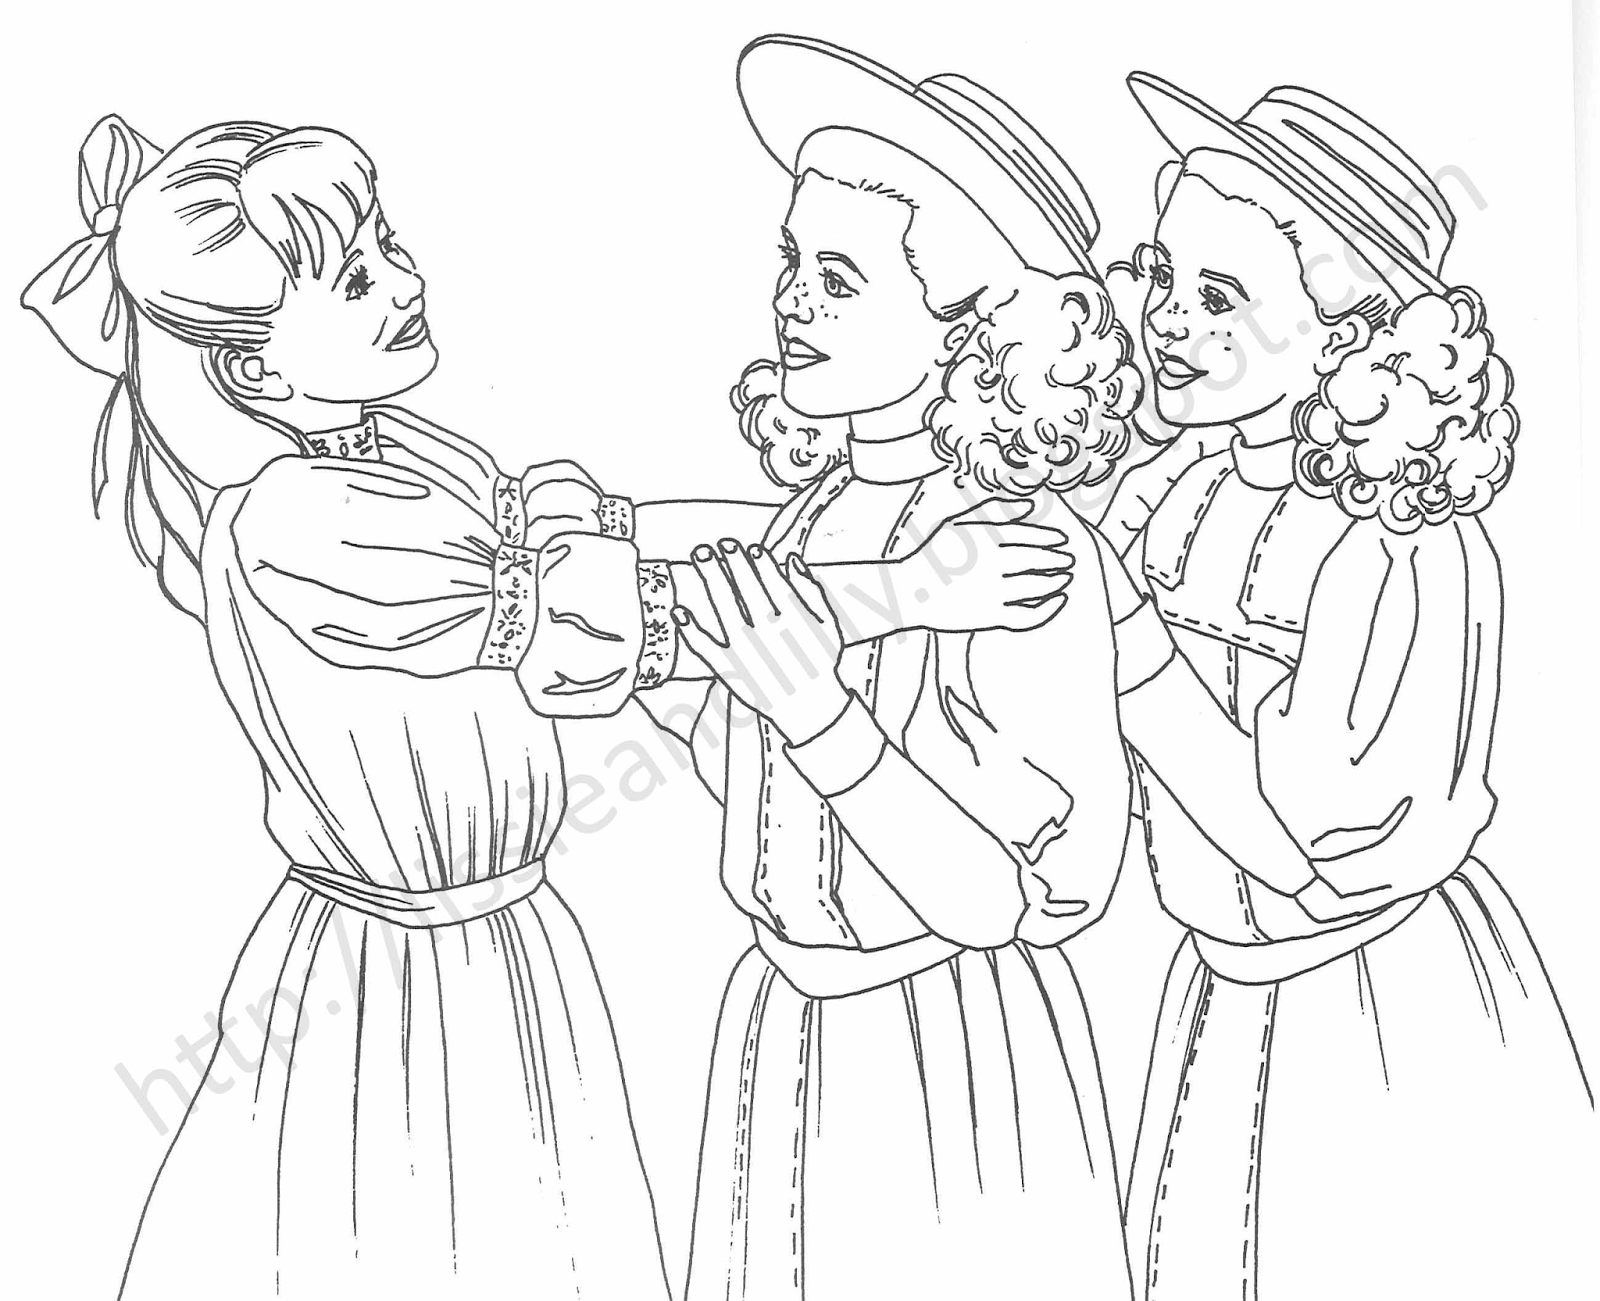 American Girl Doll Coloring Tag: American Girl Doll Coloring Pages ... | 1301x1600